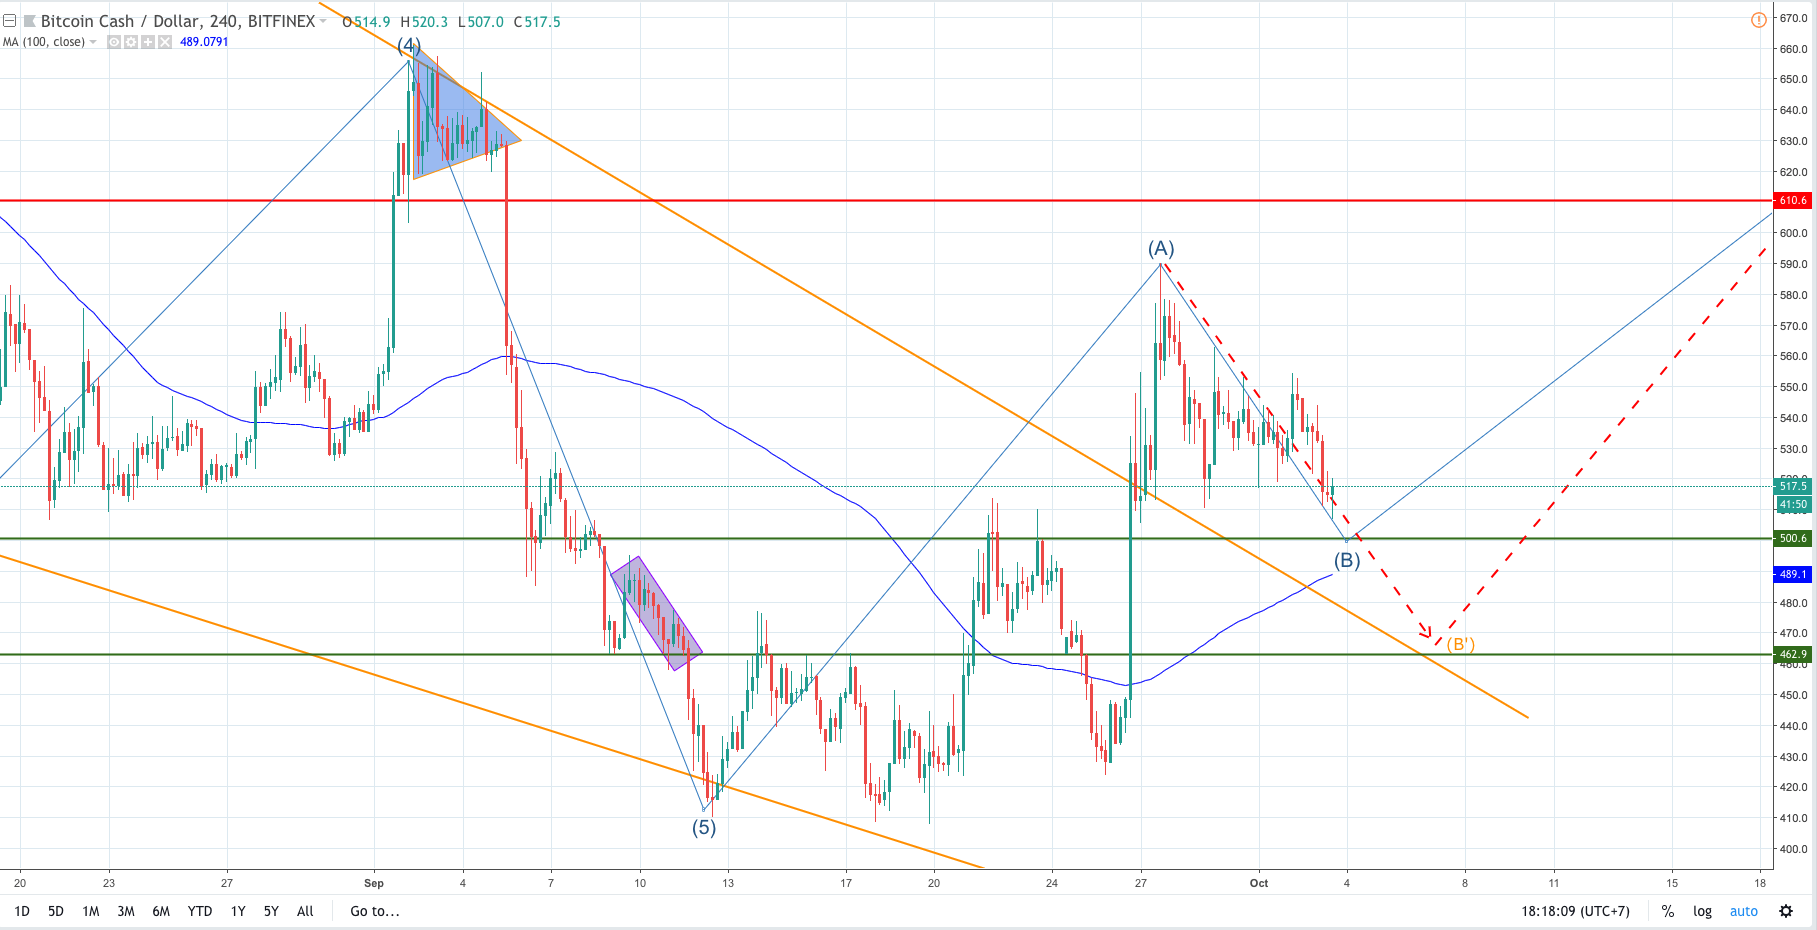 bitcoin cash analysis and forecast, bitcoin cash analysis, bitcoin cash forecast, bitcoin cash, bchusd, bch, bitcoin, bitcon hardfork, bitmain, telescope